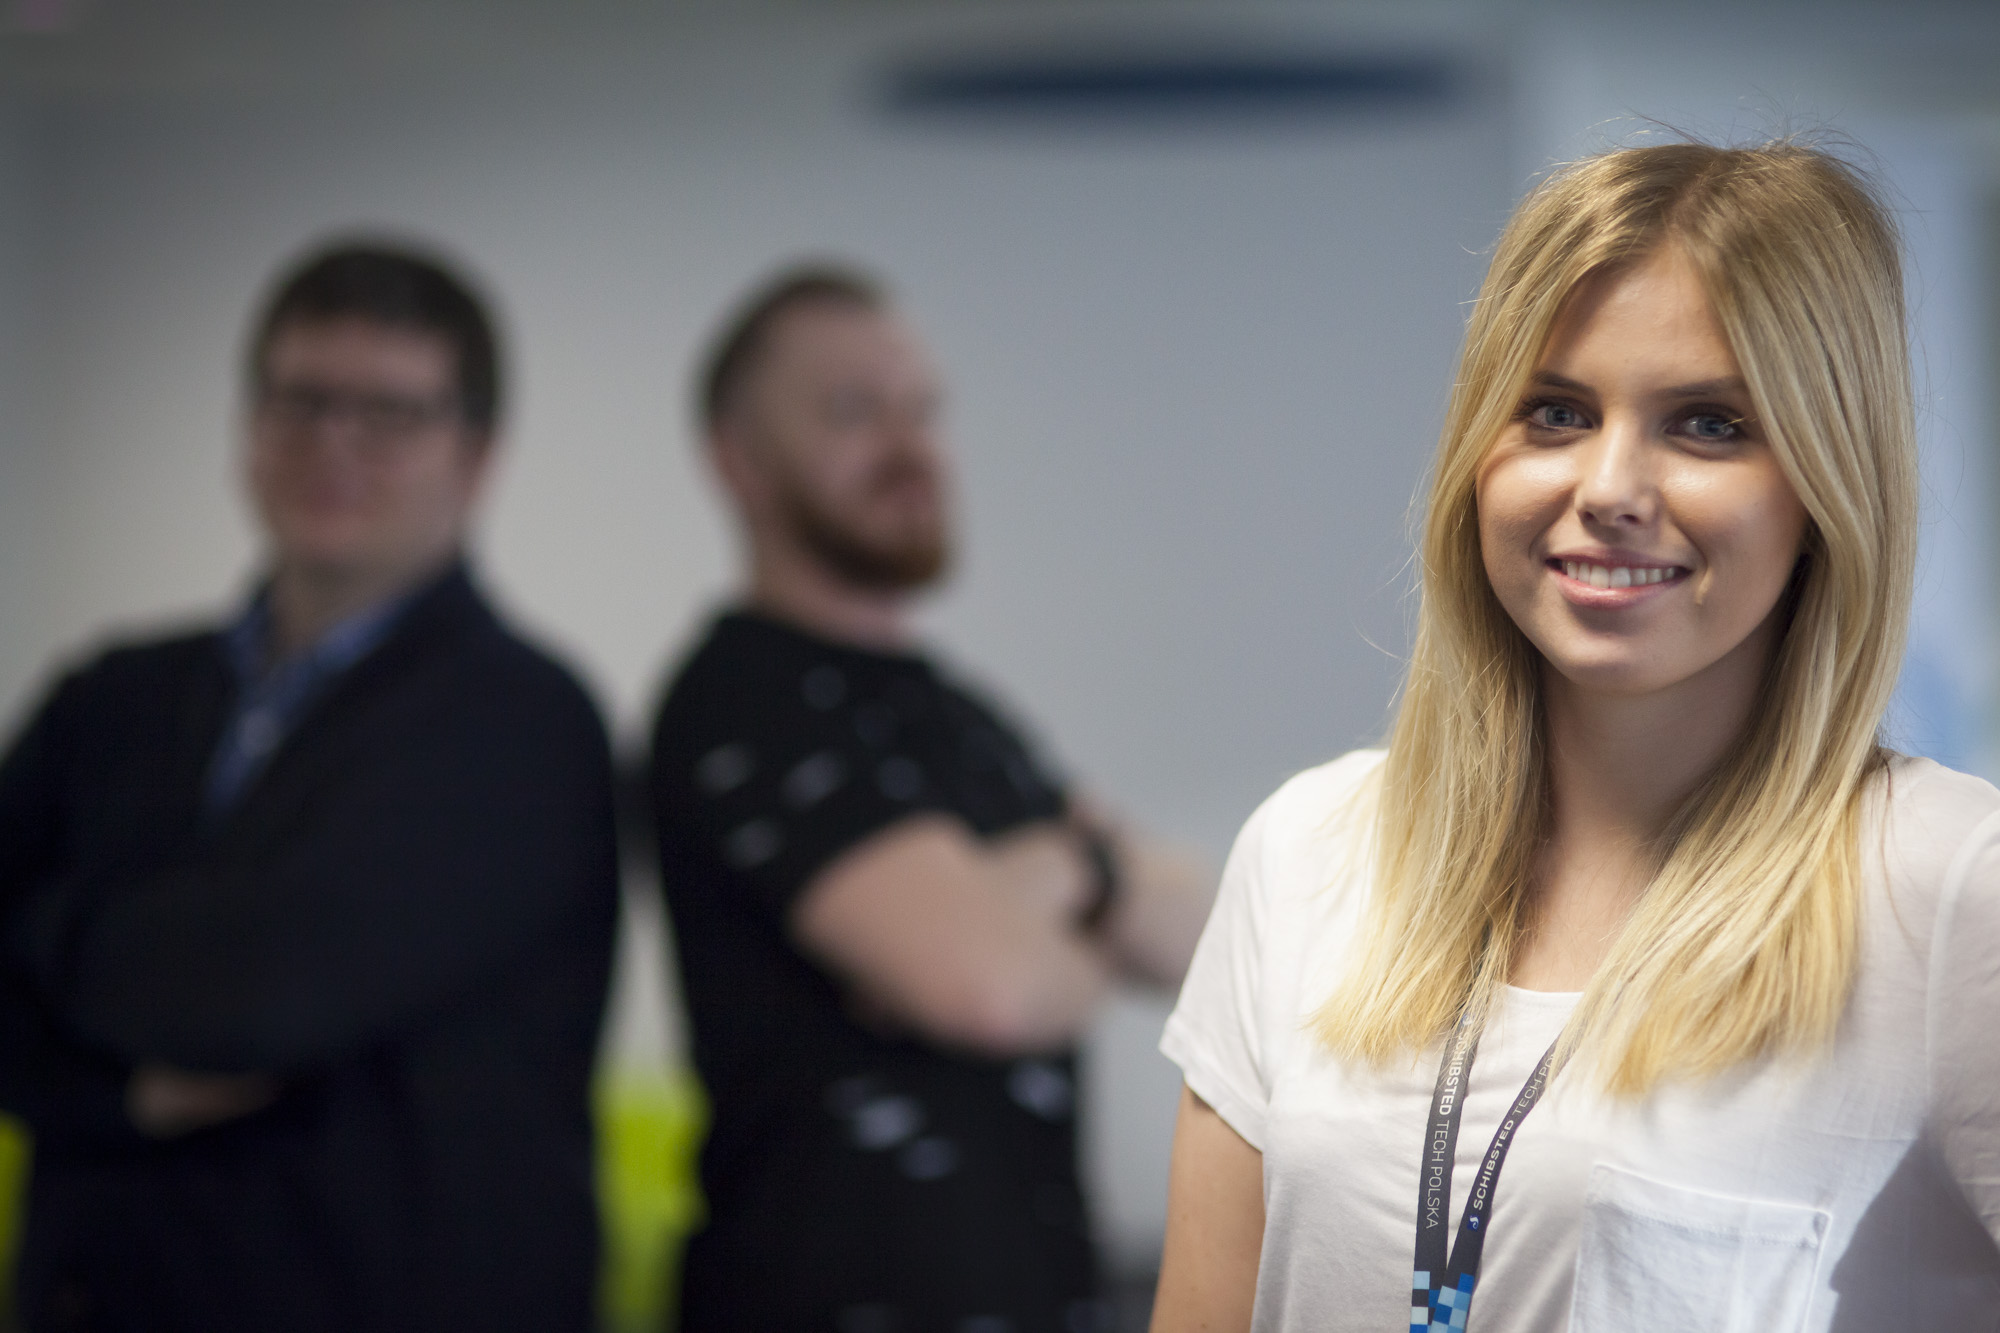 Aleksandra Gorna is office coordinator for Schibsted Tech Polska in Gdansk